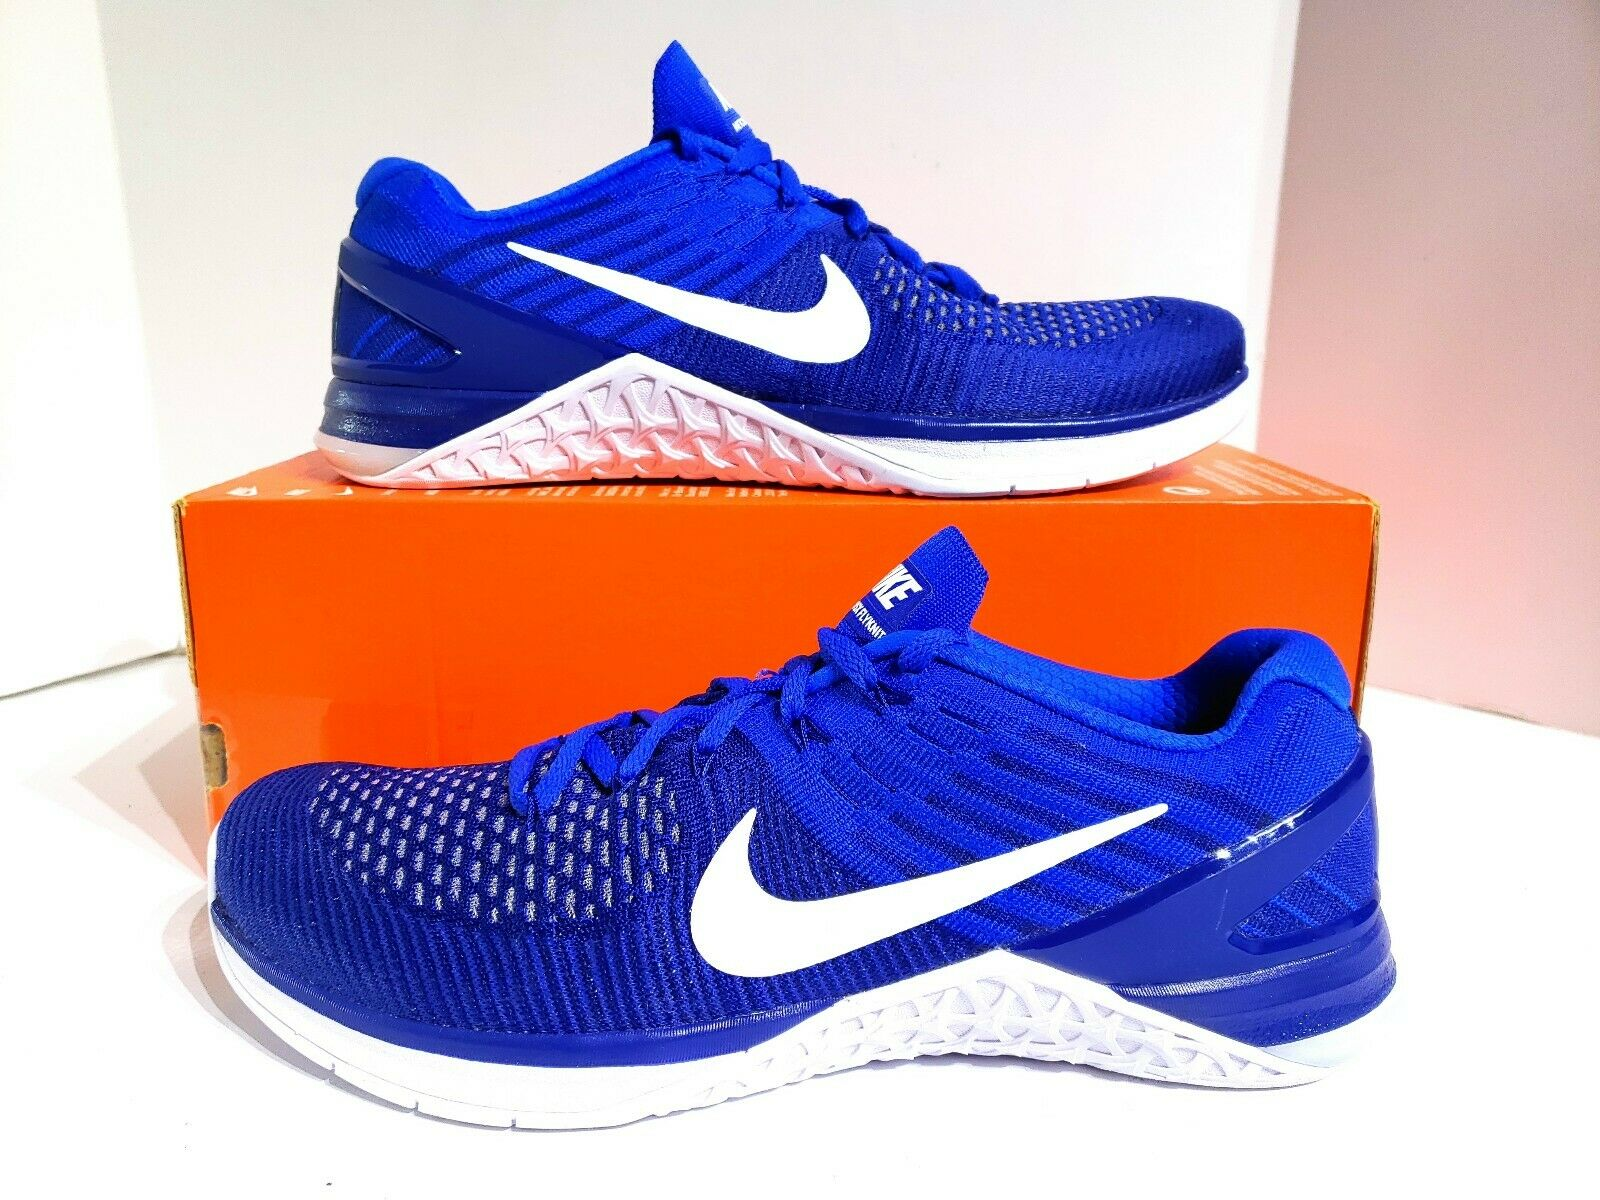 Nike Metcon DSX Flyknit Training shoes Deep Royal bluee White 852930-402 Size 10